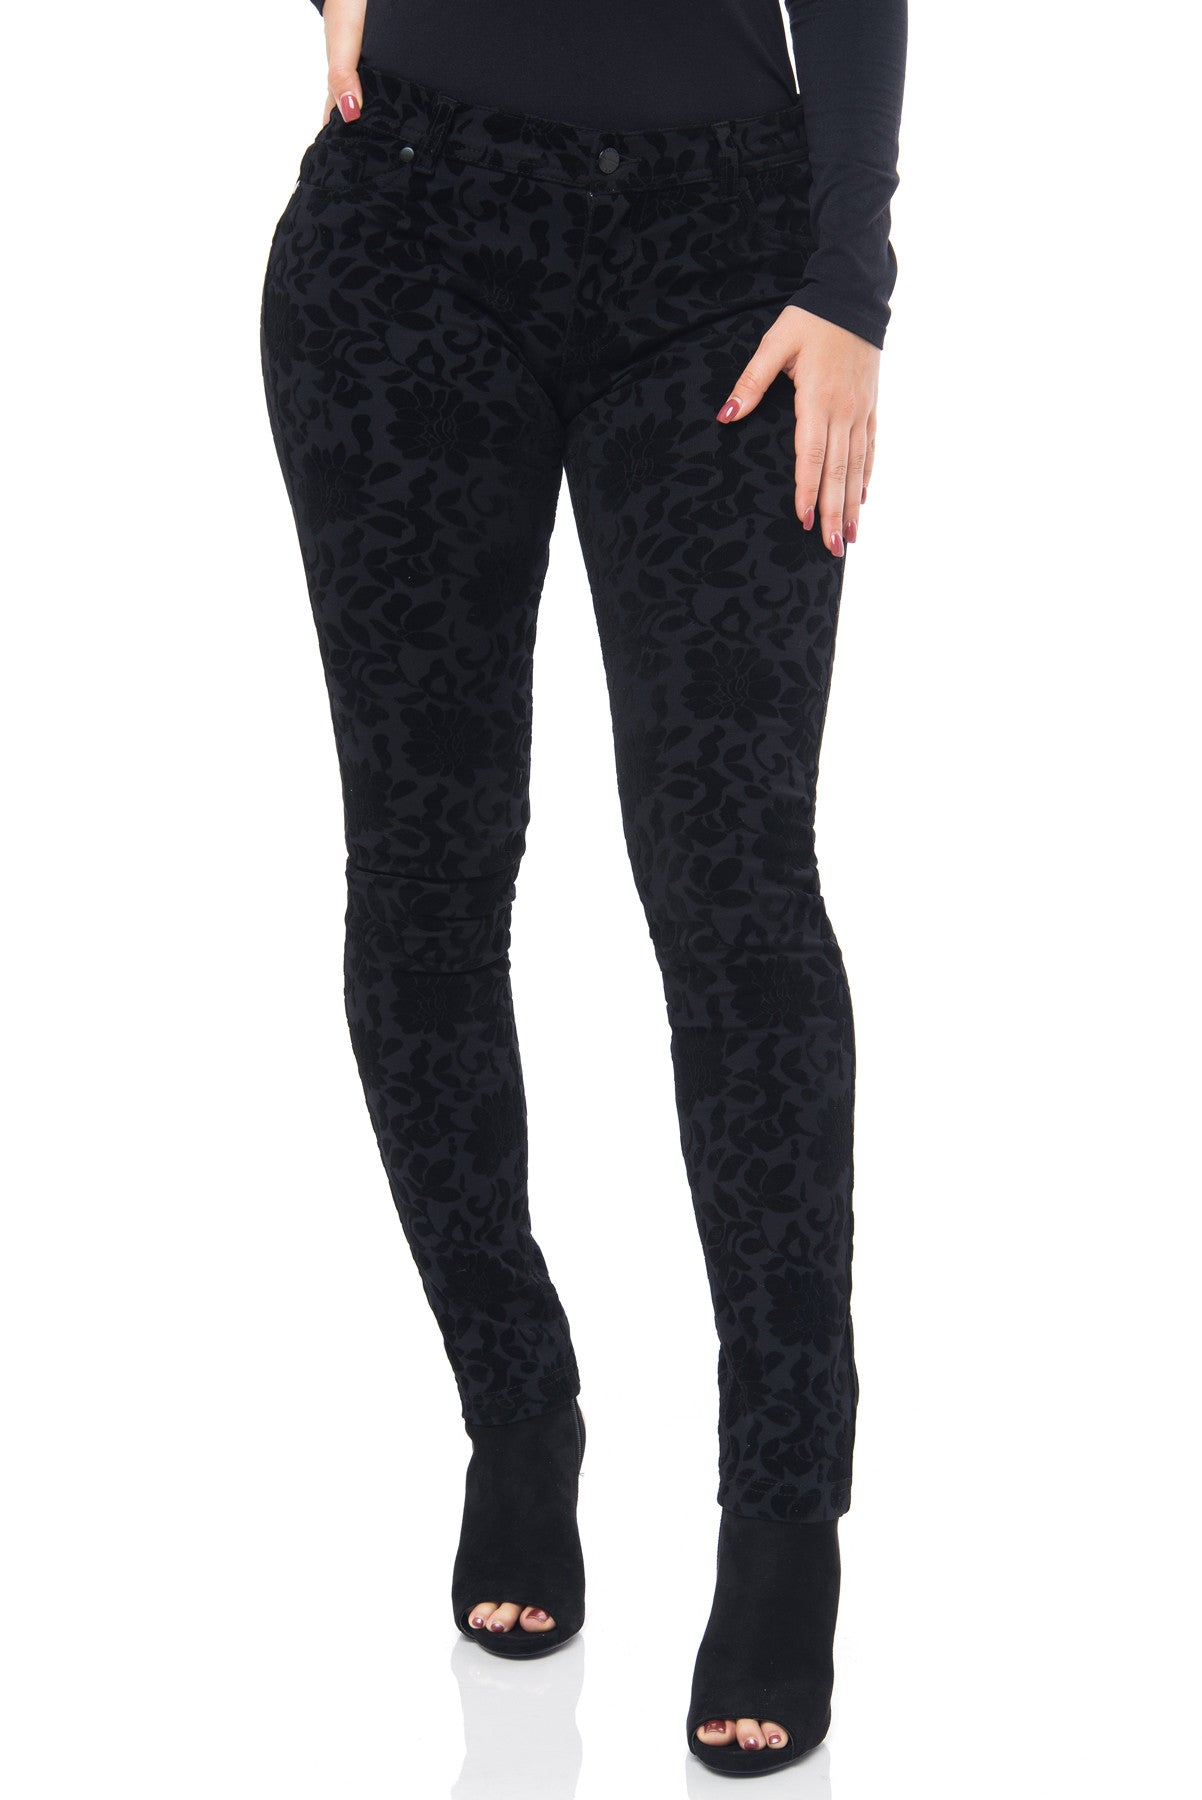 Fey Black Pants - Fashion Effect Store  - 2